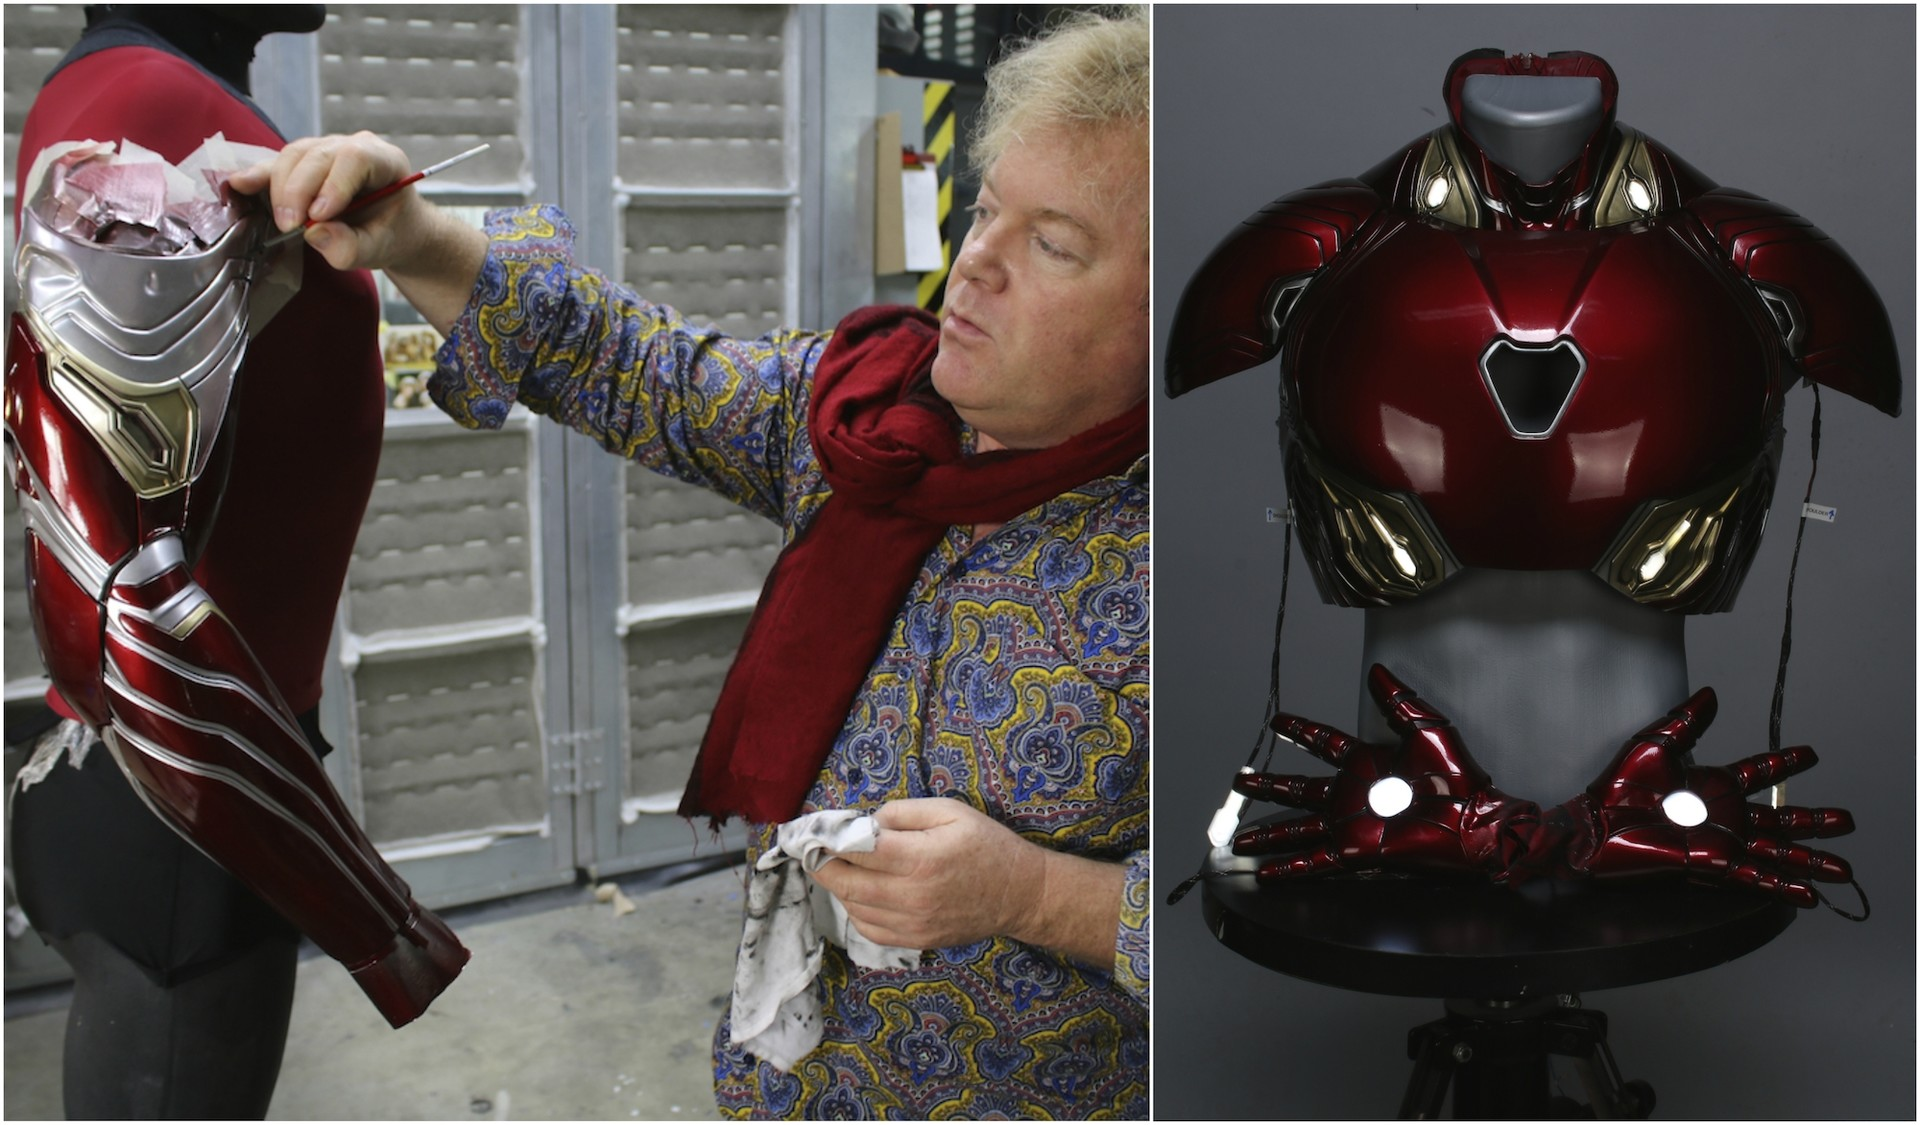 Legacy Effects Co-Founder, Shane Mahan, working his magic on the new Iron Man suit for Avengers: Infinity War.